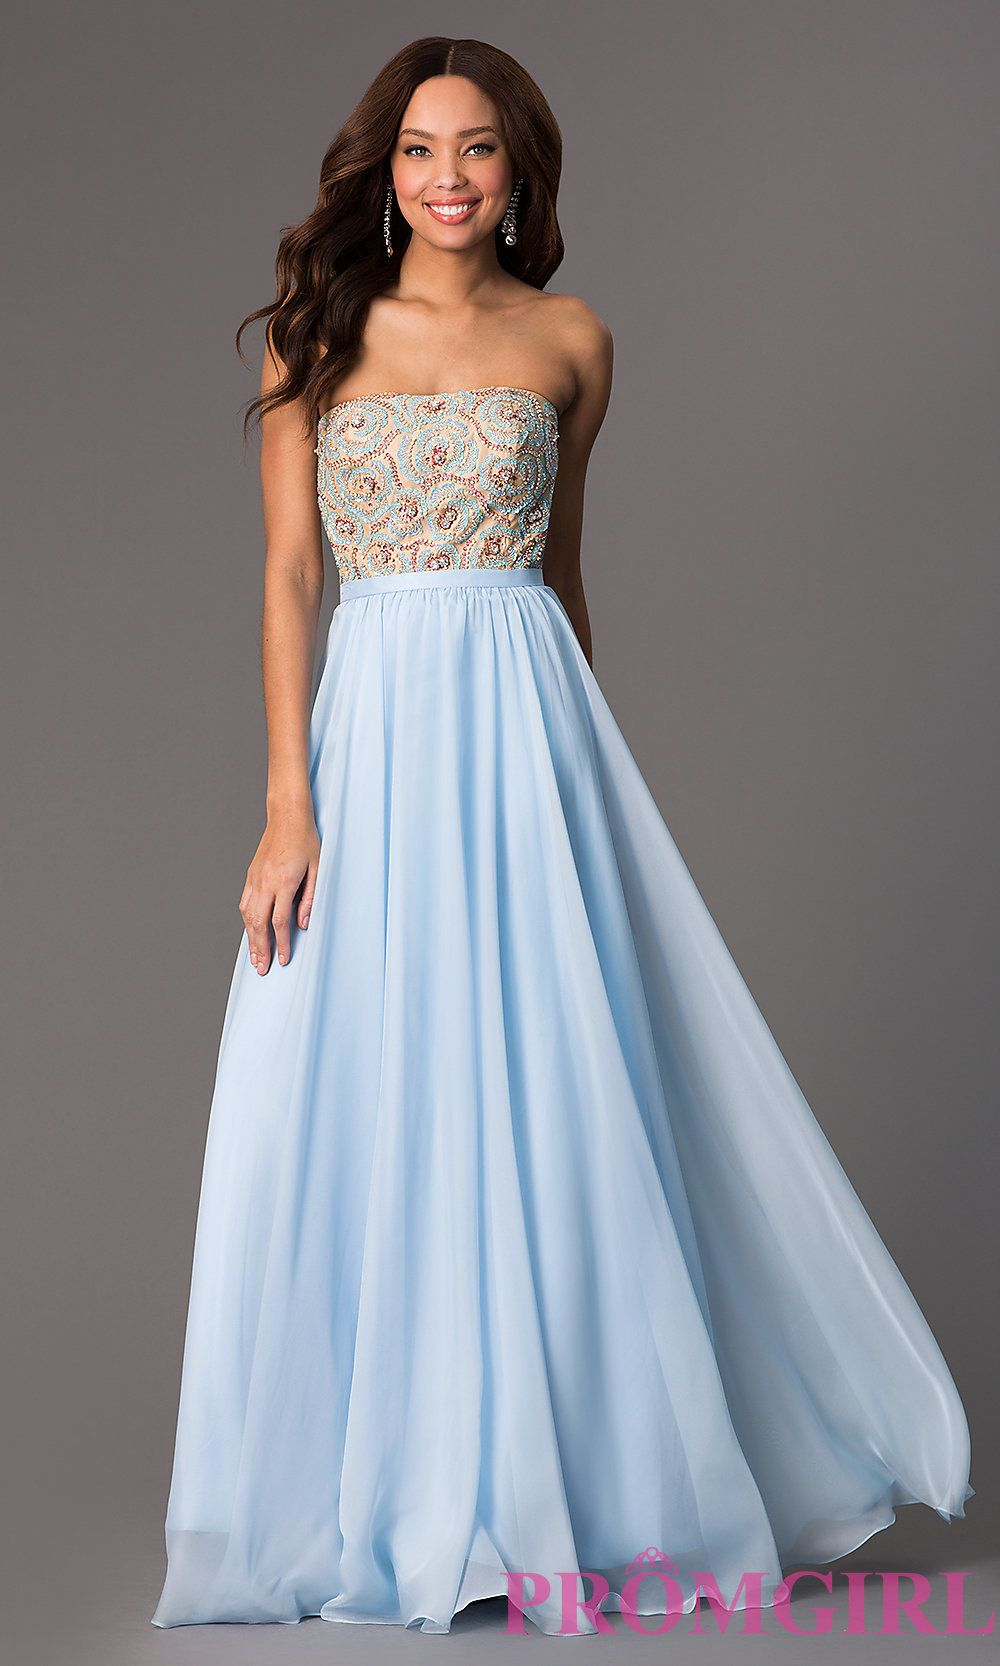 swatch_attribute_558868 | For Anslee | Pinterest | Prom, Sherri hill ...